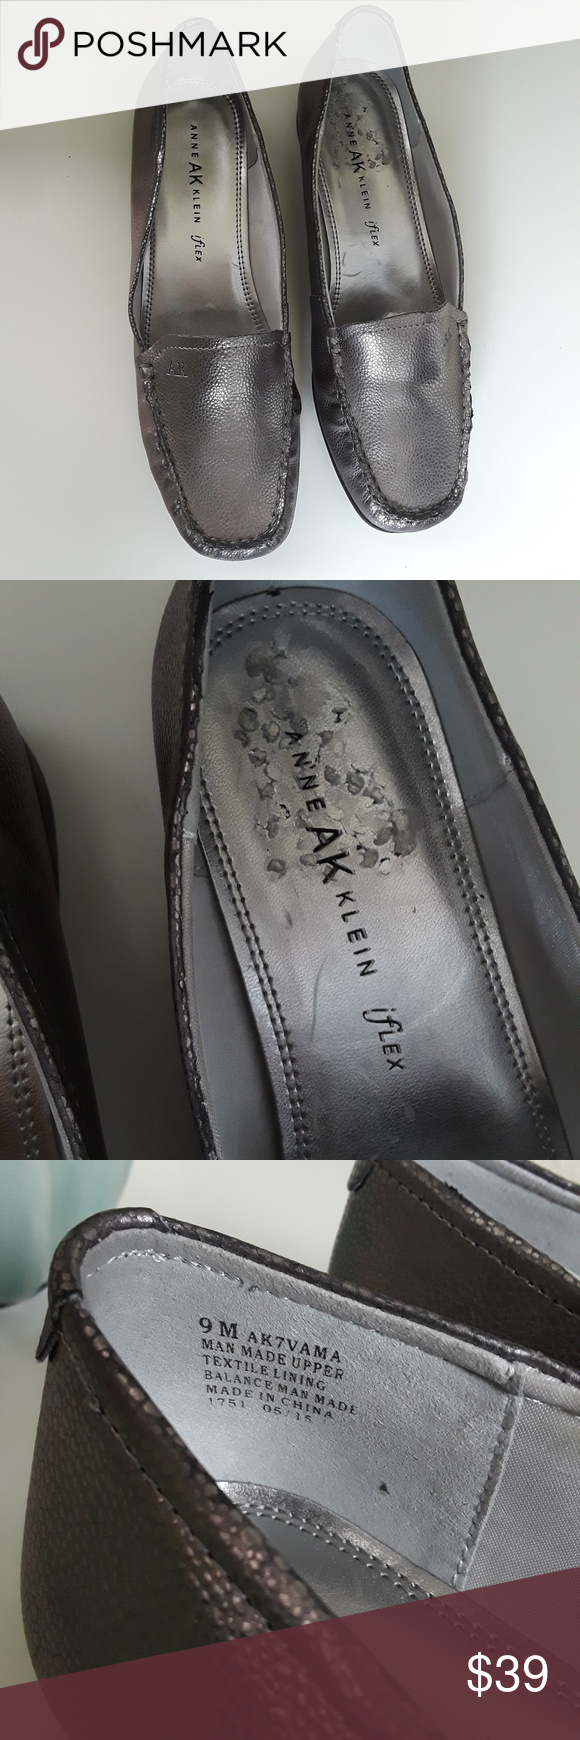 a3af54410667 Anne Klein Pewter Slip On Loafer Flats Size 9 Vama patent leather loafers.  Women s size 9 Medium. iflex cushioned technology insole. Metallic silver.